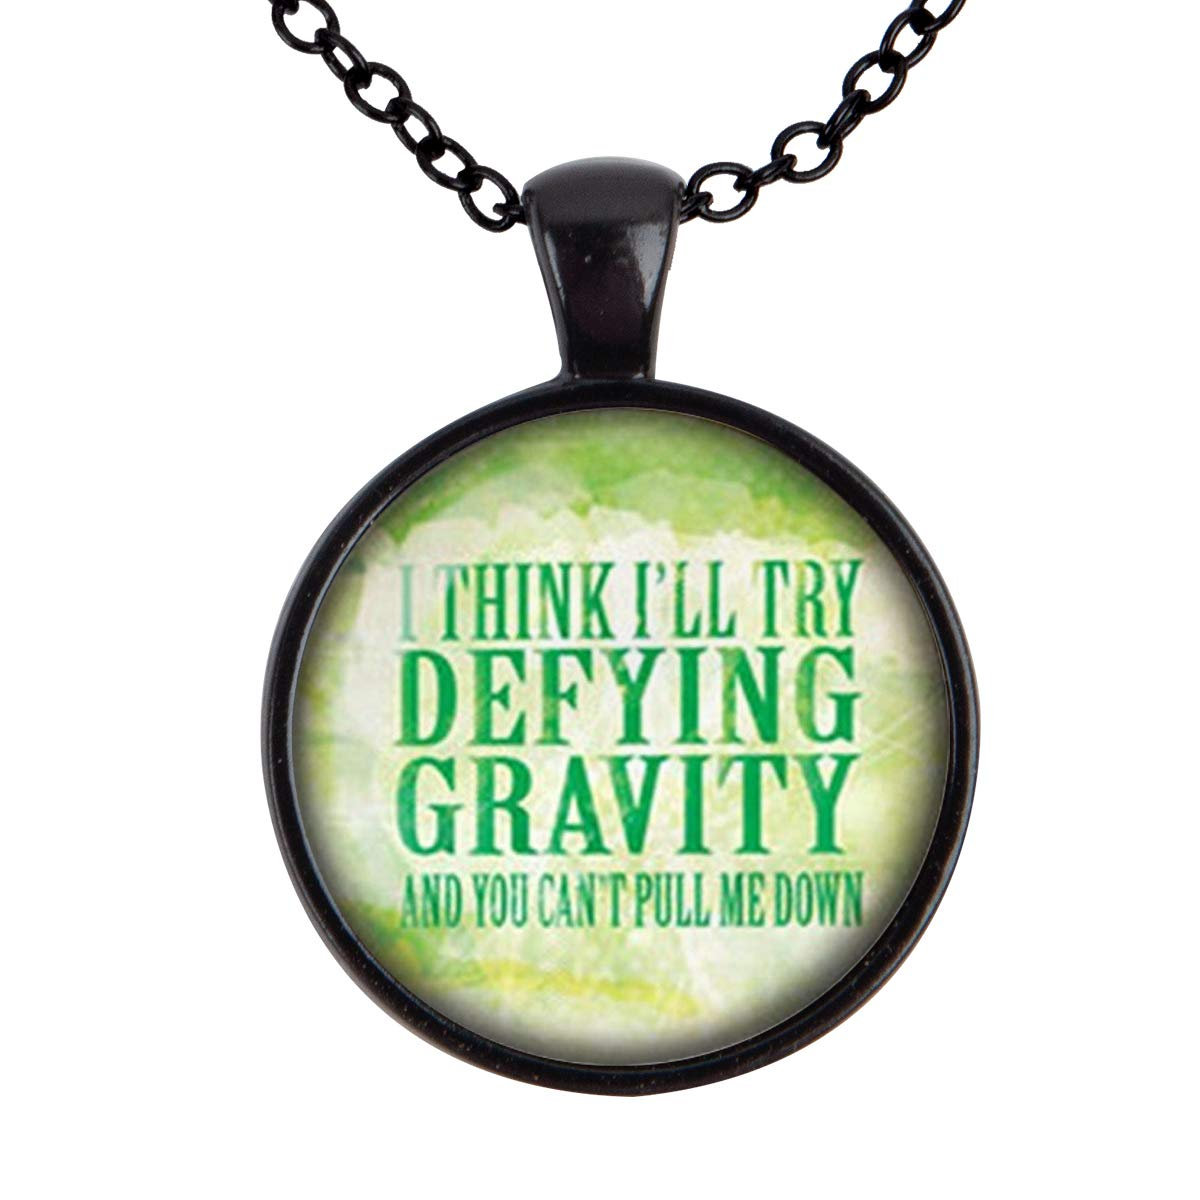 Family Decor Wicked The Musical Defying Gravity Pendant Necklace Cabochon Glass Vintage Bronze Chain Necklace Jewelry Handmade